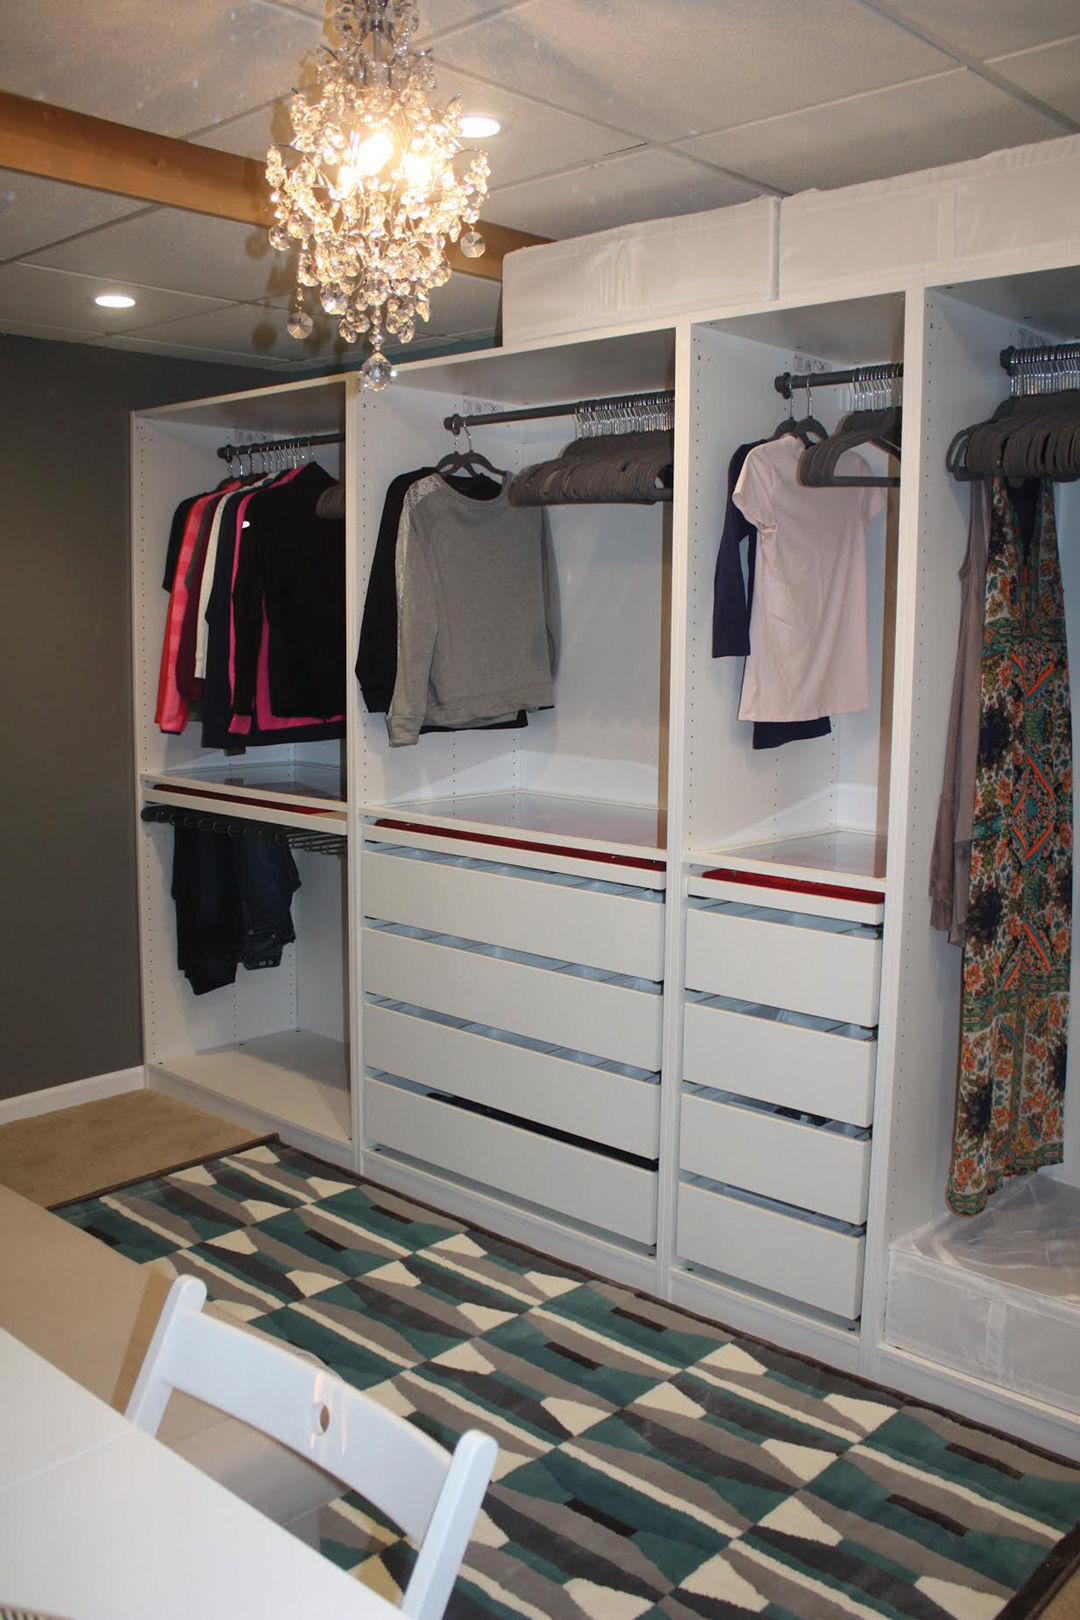 High Quality Melanie Rockmanu0027s New Closet Was Created From A Spare Bedroom And Outfitted  With A Closet Organizing